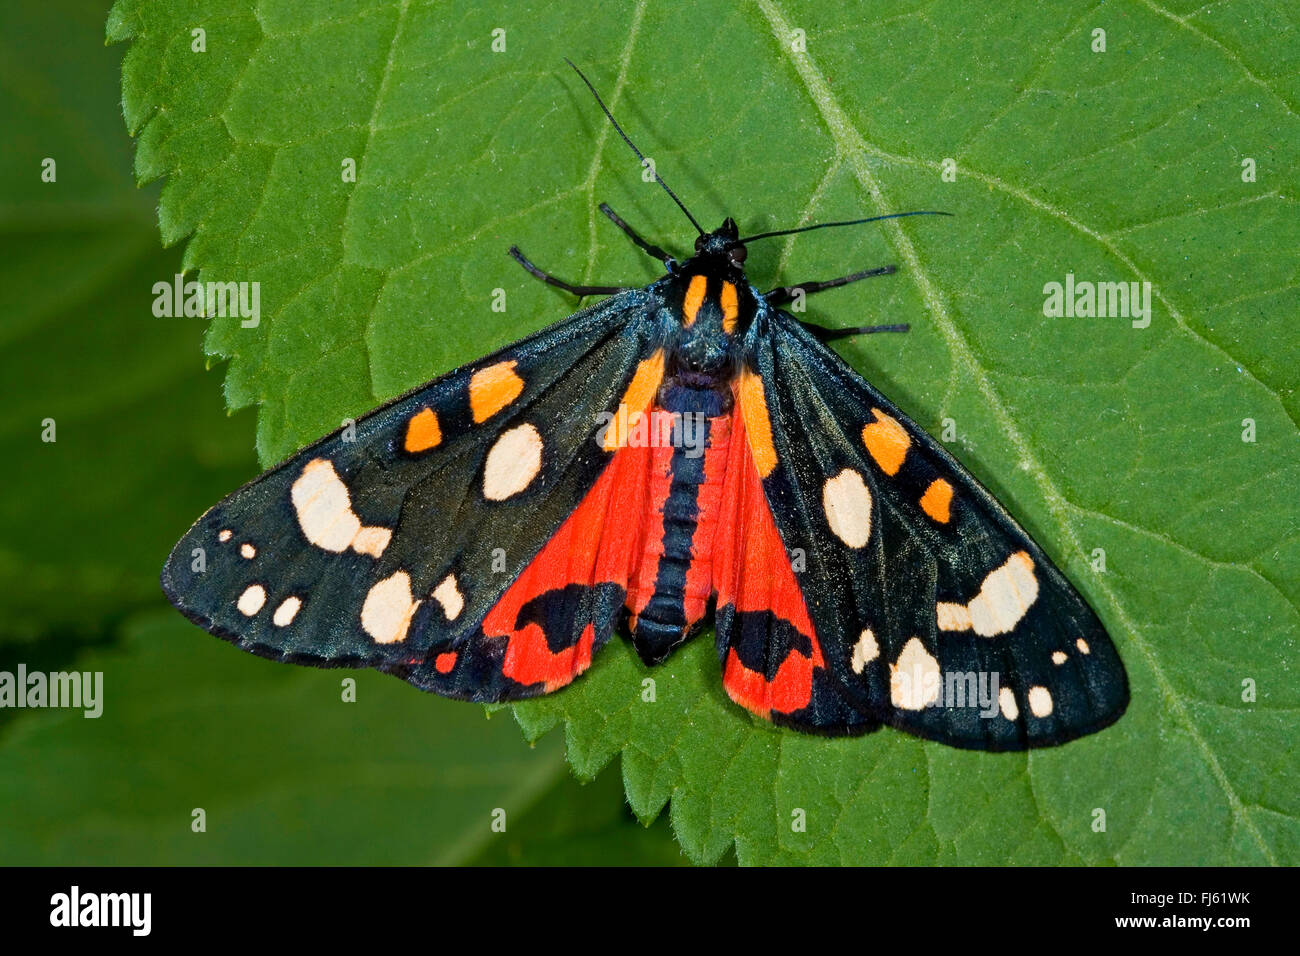 scarlet tiger (Callimorpha dominula, Panaxia dominula), sits on a leaf, Germany - Stock Image